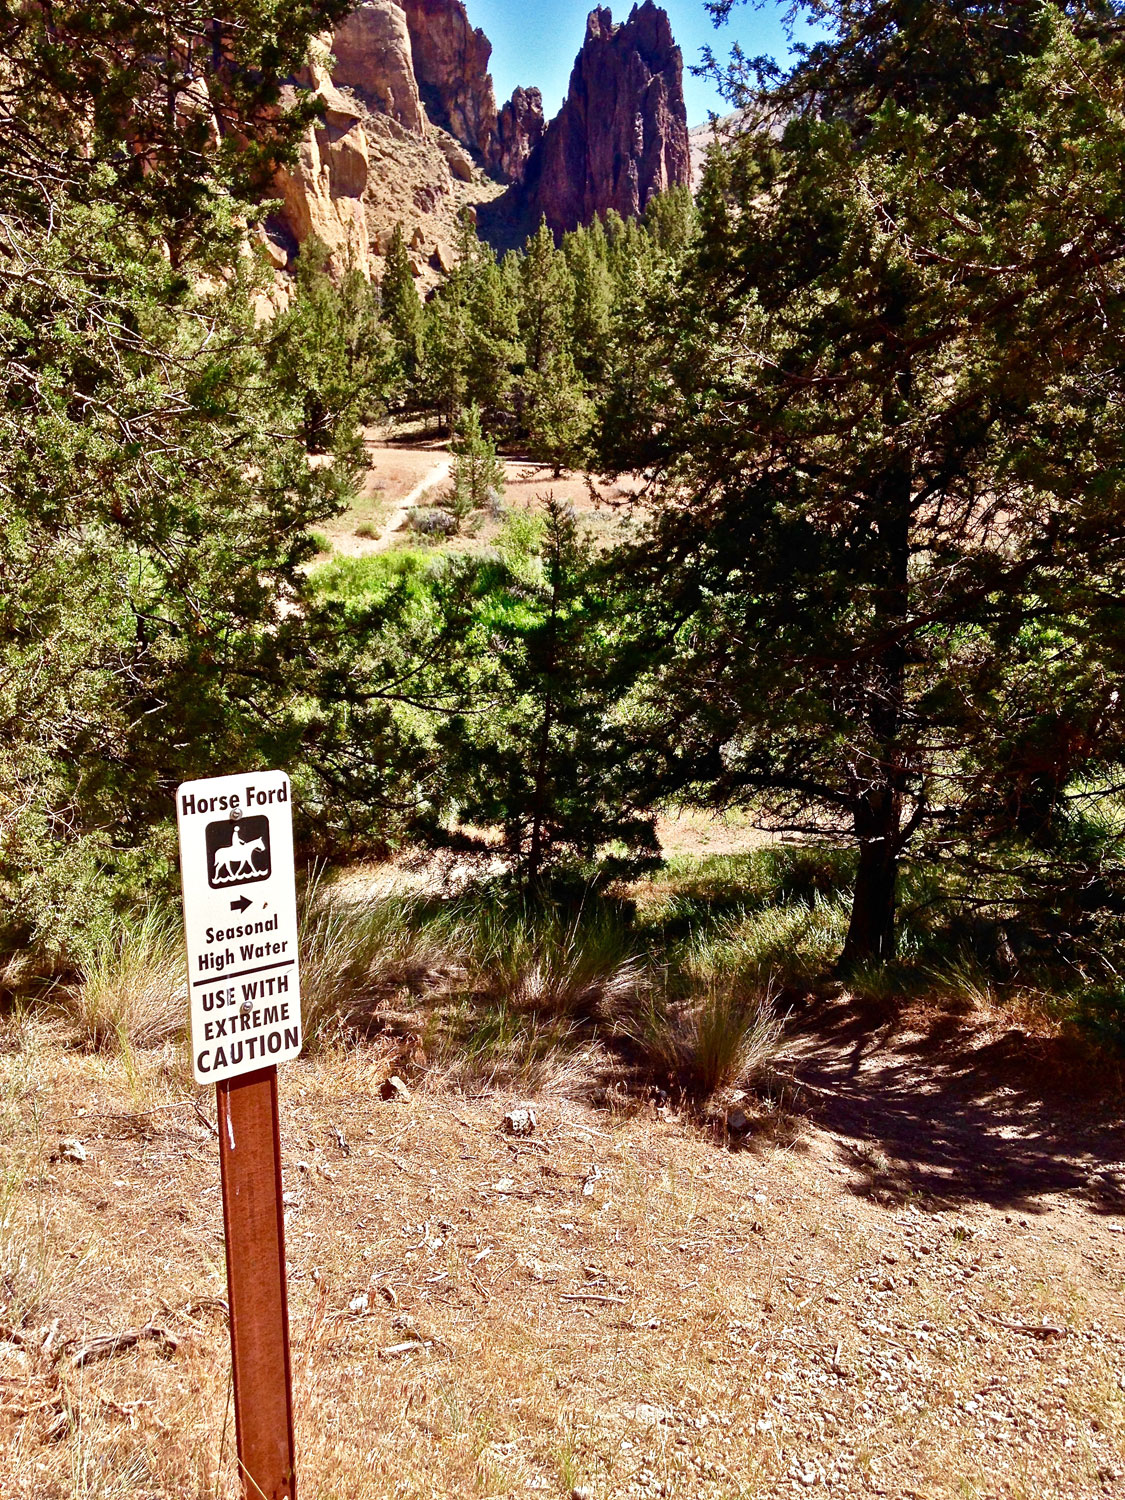 horse ford sign on the  Wolf Tree Tree Trail  at Smith Rock State Park